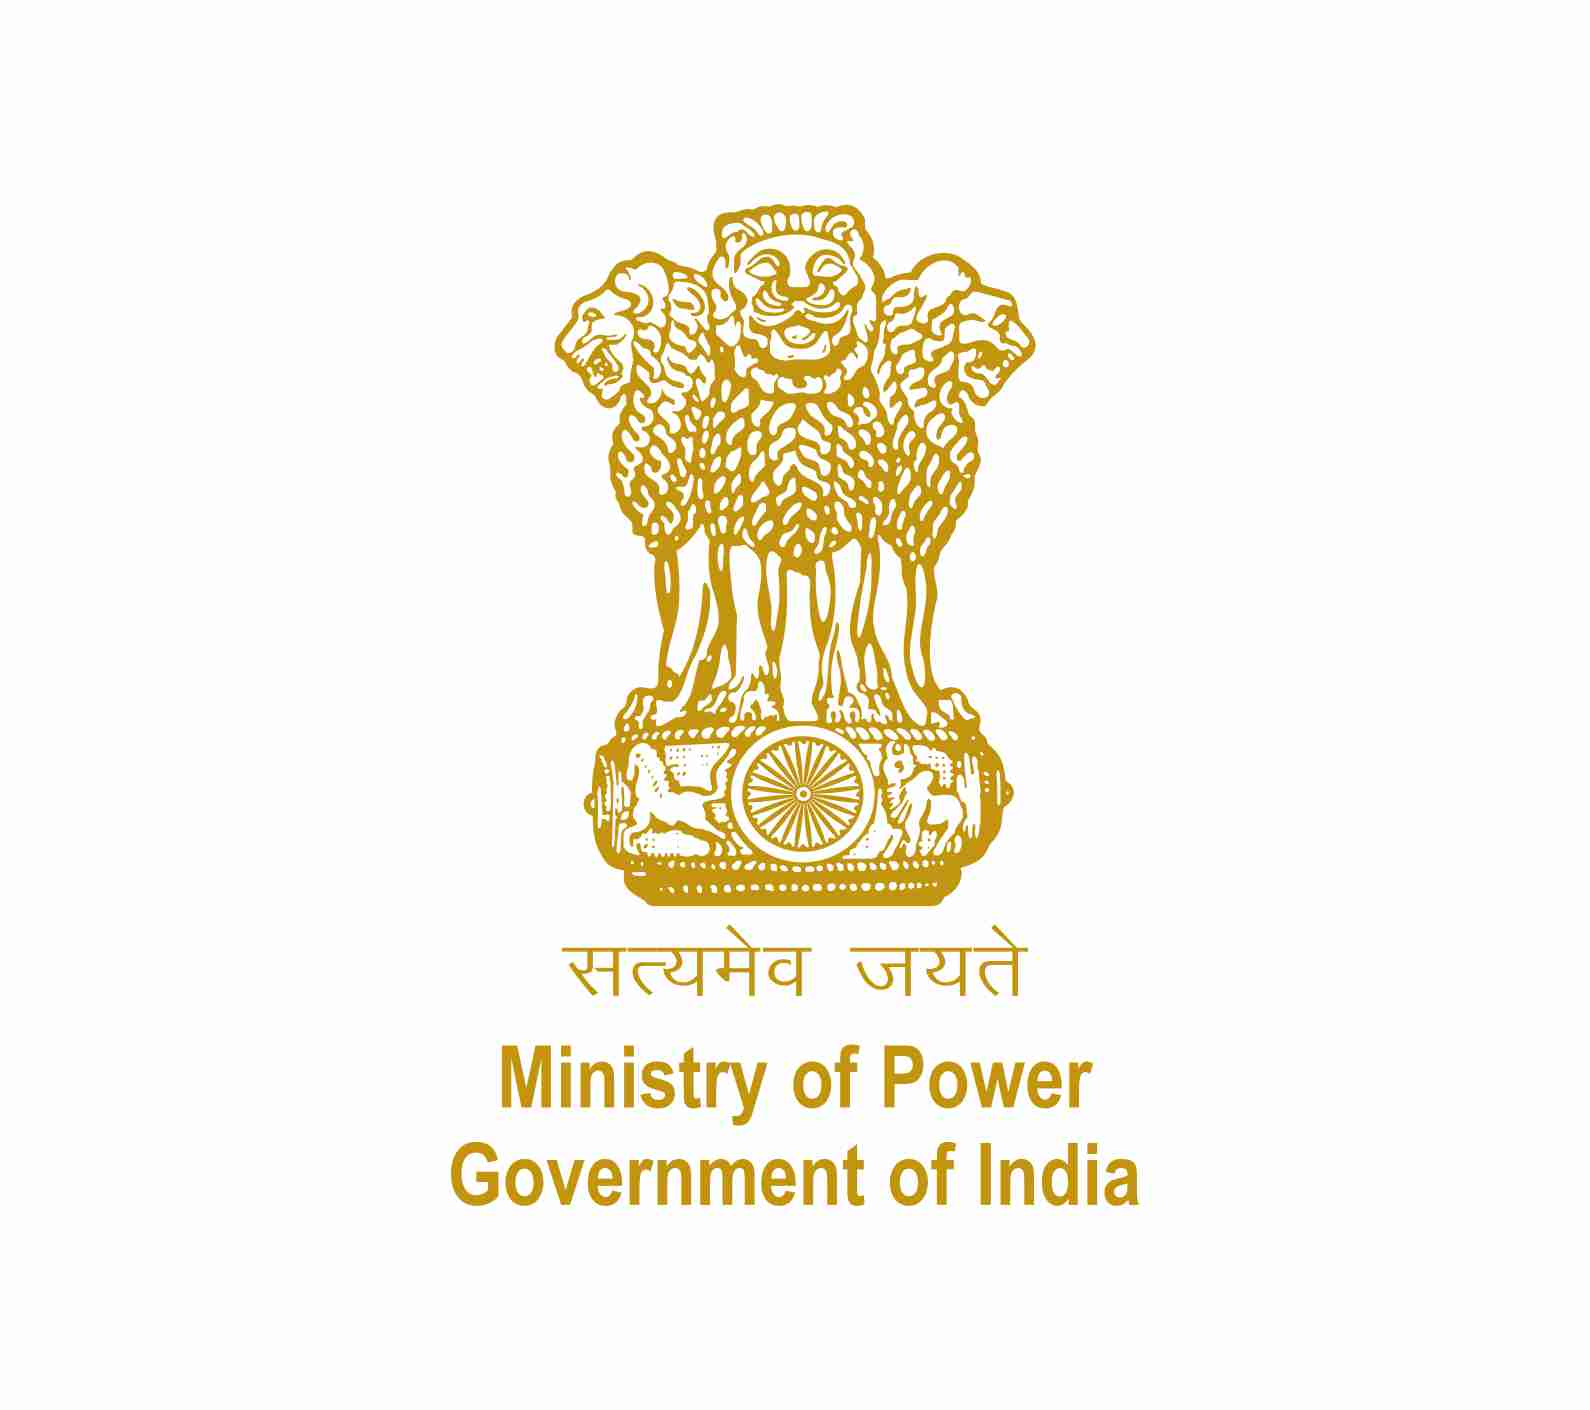 Guidelines for Procurement of aggregated Power of 2500 MW under Pilot Scheme-II for three years (covered under Medium Term) facilitated by PFC Consulting Limited as Nodal Agency and through an Aggregator